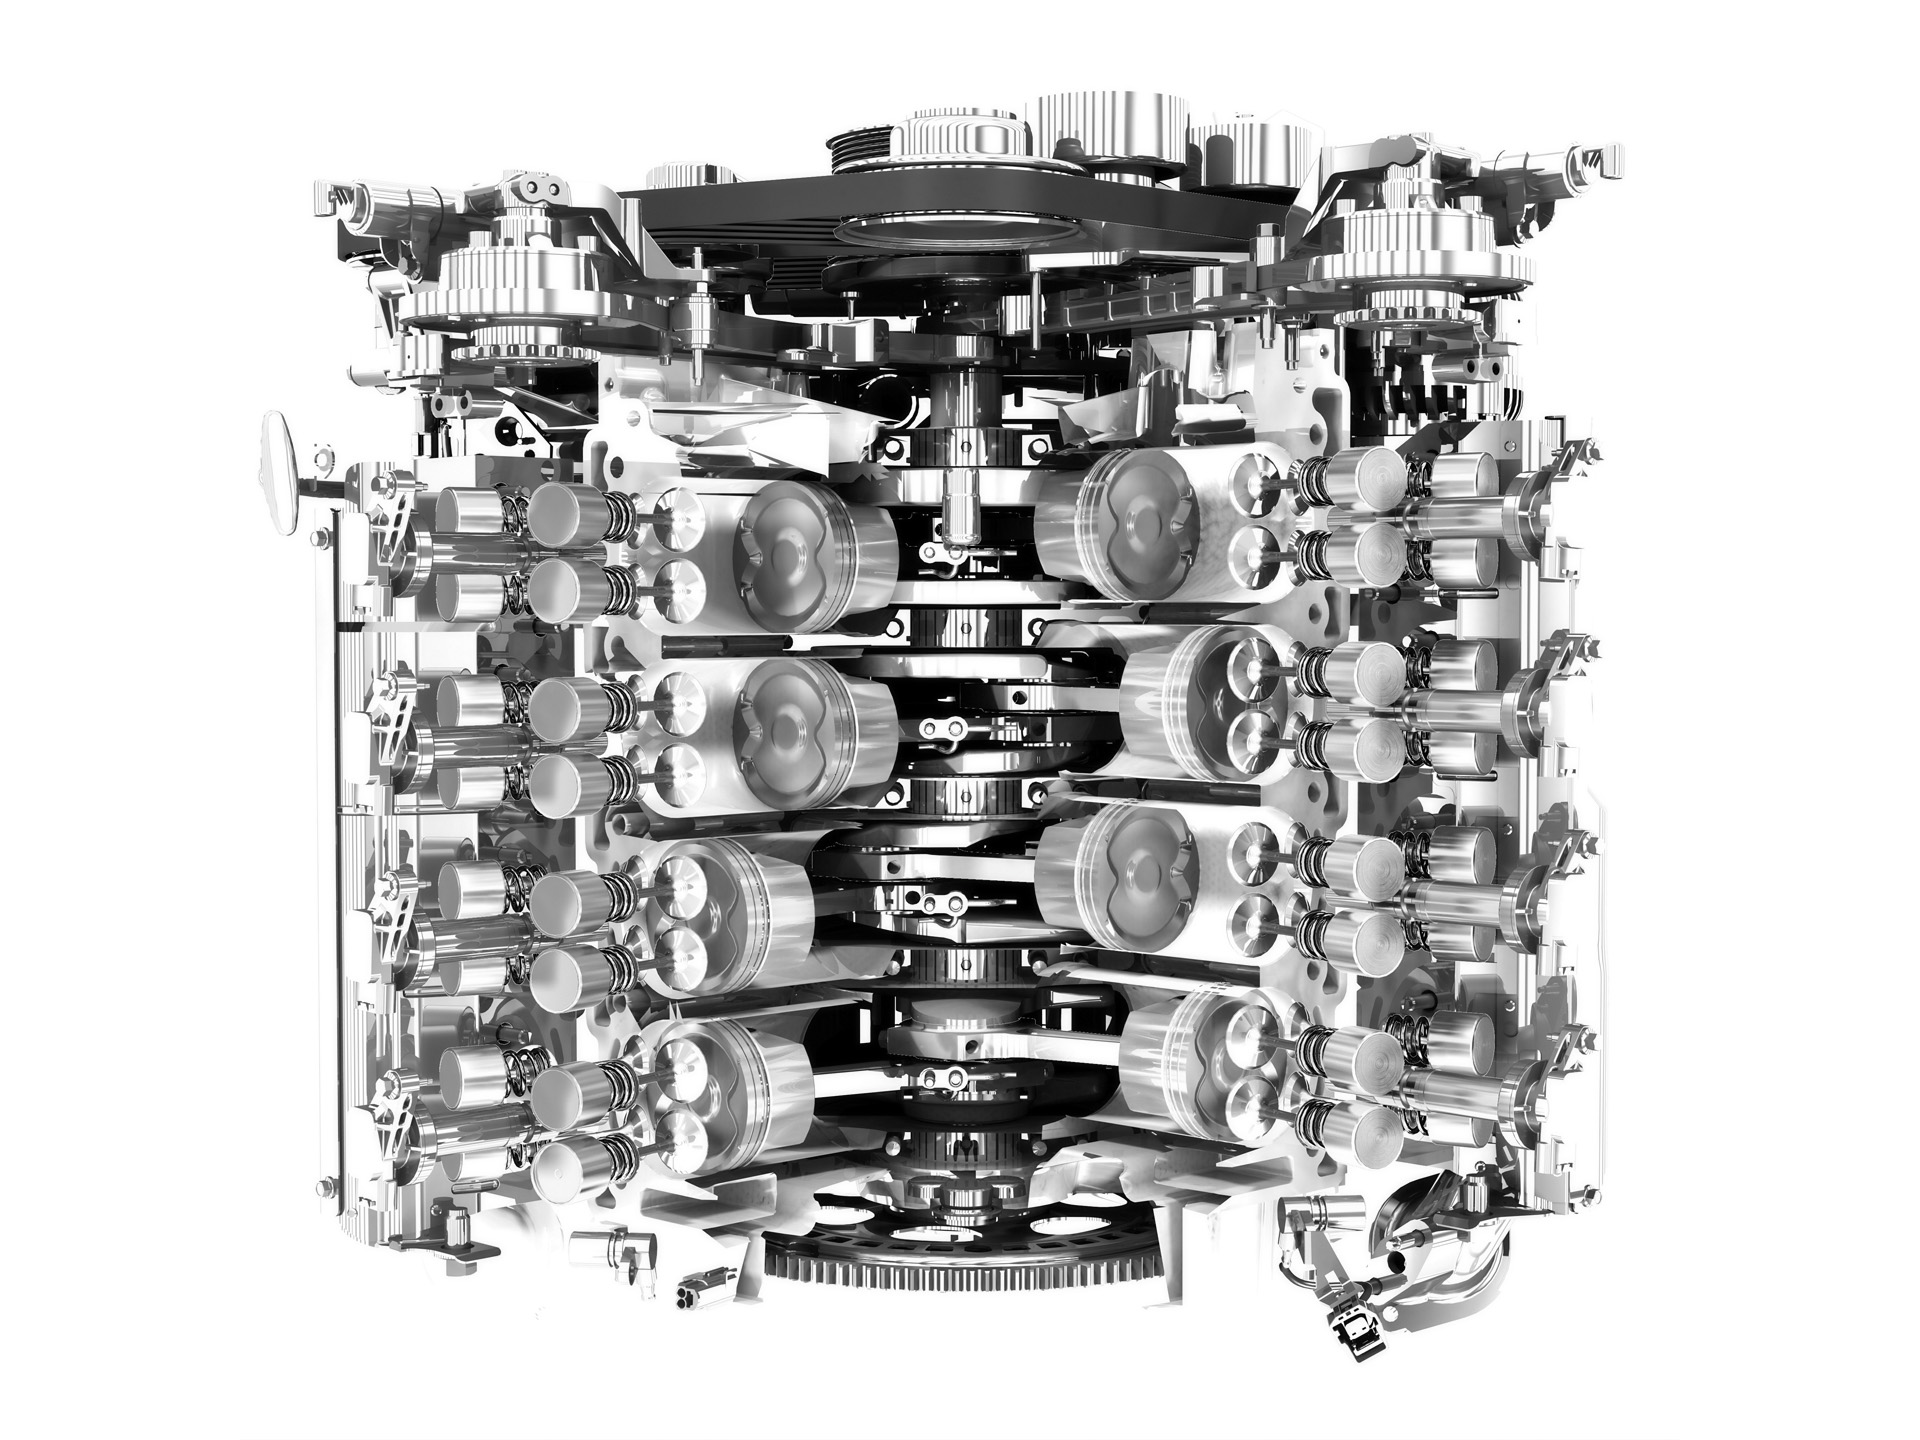 Sample P2541 Engine